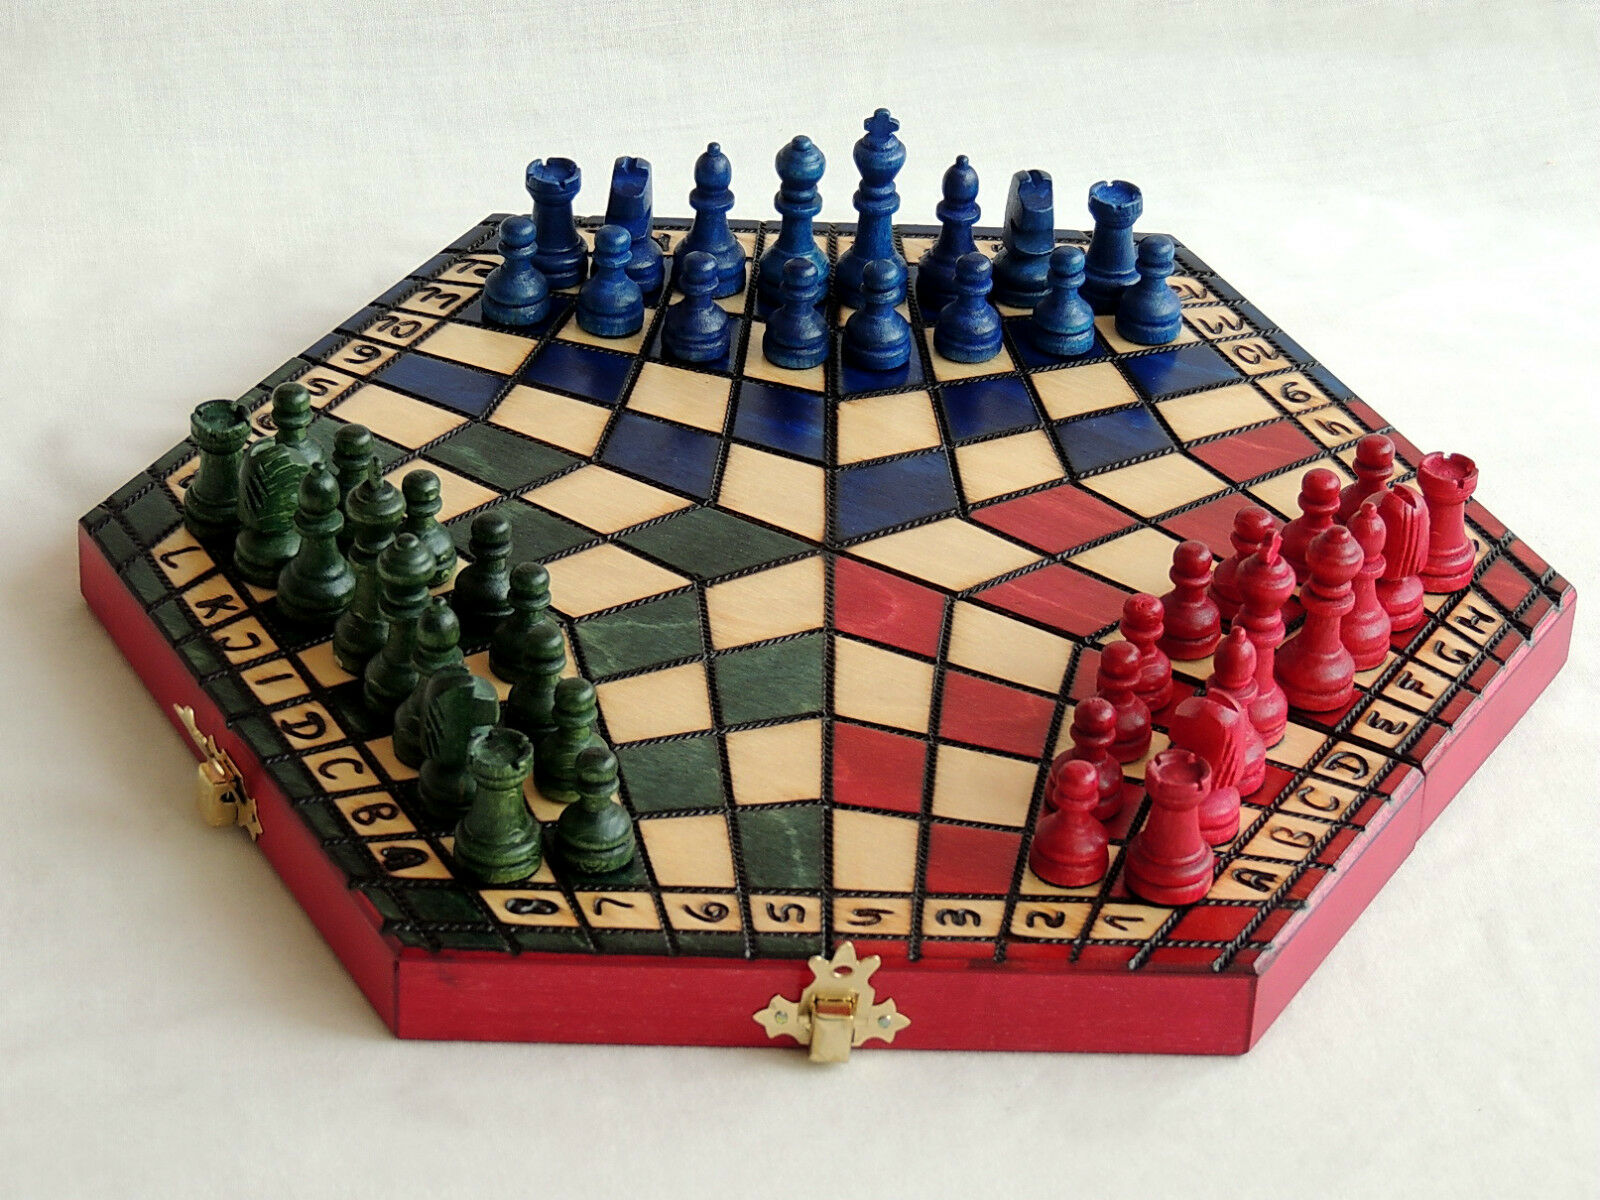 BRAND NEW 32CM THREE PLAYER WOODEN CHESS SET + RULES